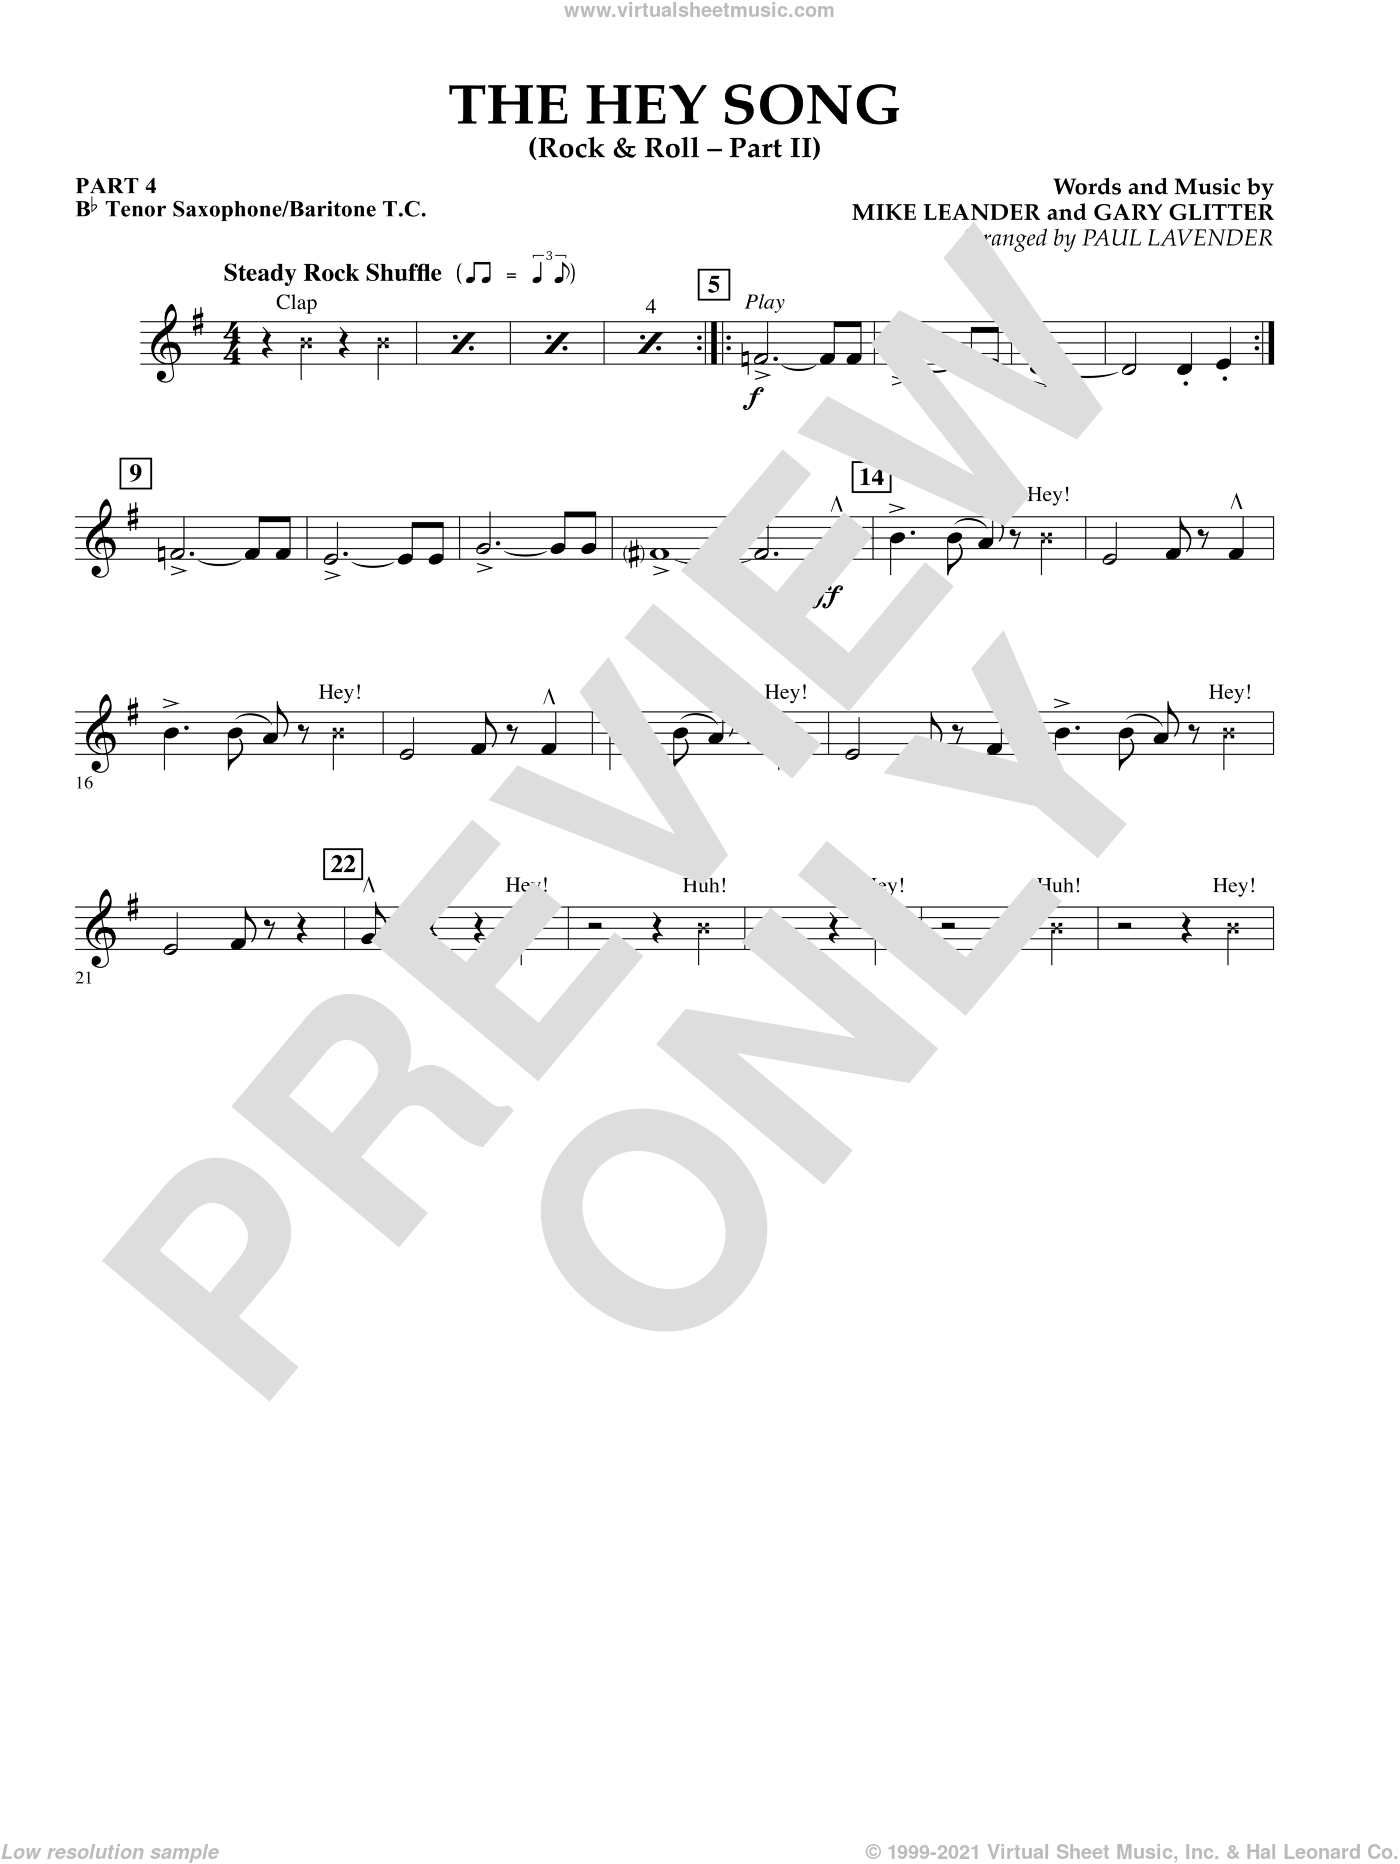 The Hey Song (Rock and Roll Part II) (Flex-Band) sheet music for concert band (Bb tenor sax/bar. t.c.) by Paul Lavender and Mike Leander. Score Image Preview.